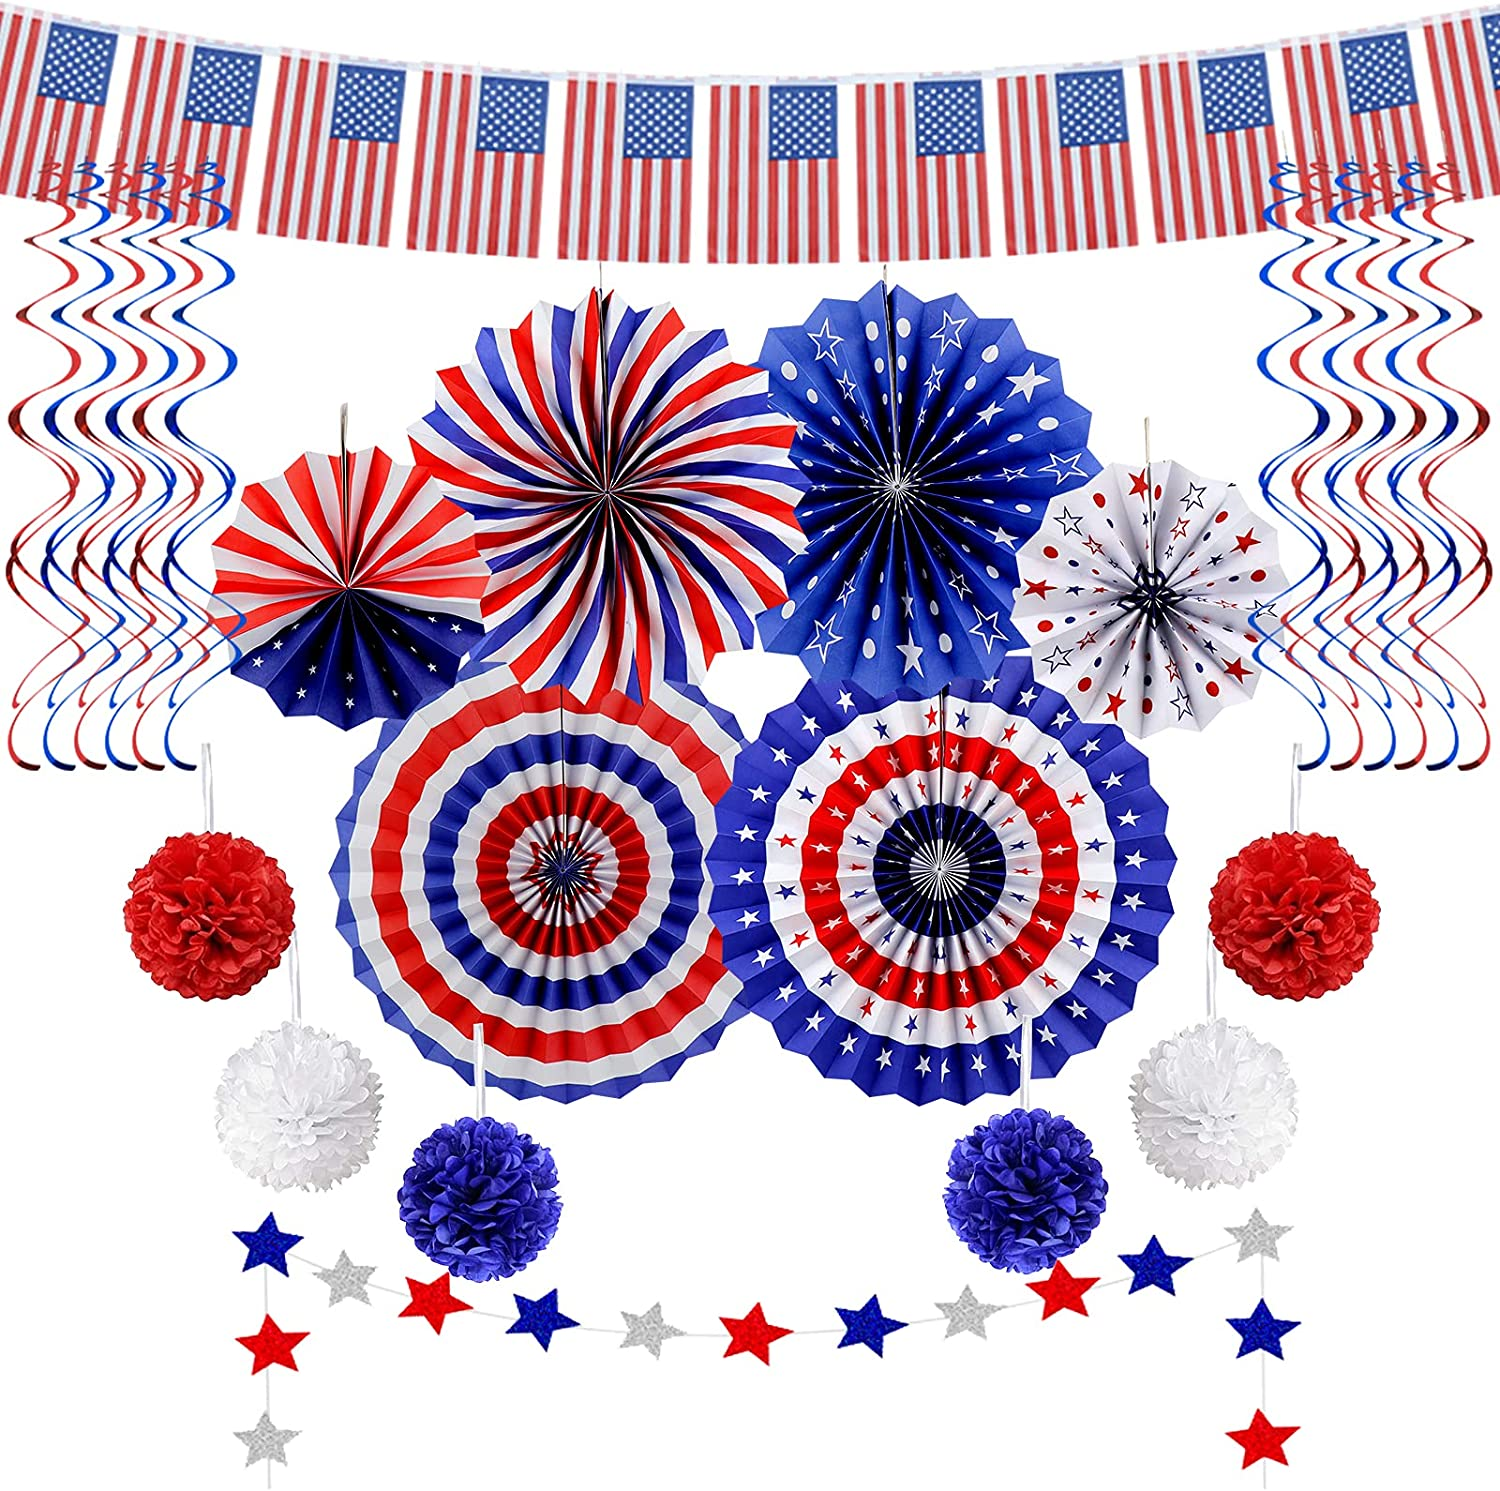 26Pcs Patriotic Party Decorations 4th of July American Flag Decor Set - USA Flag String, Red White Blue Paper Fans, Star Streamer, Pom Poms, Hanging Swirls Party Supplies for American Theme Party